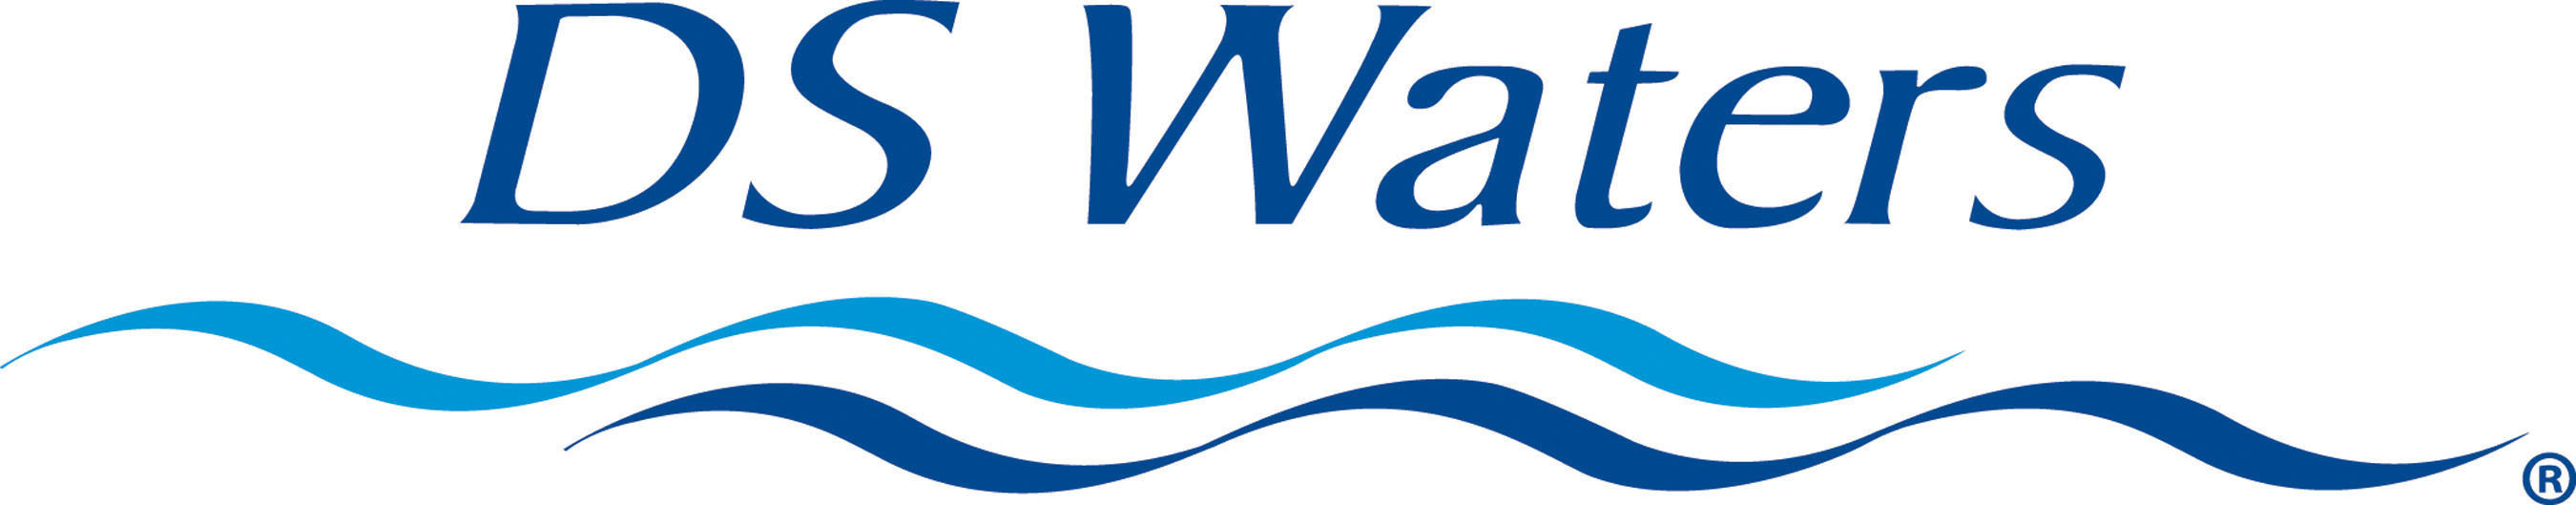 DS WATERS LOGO